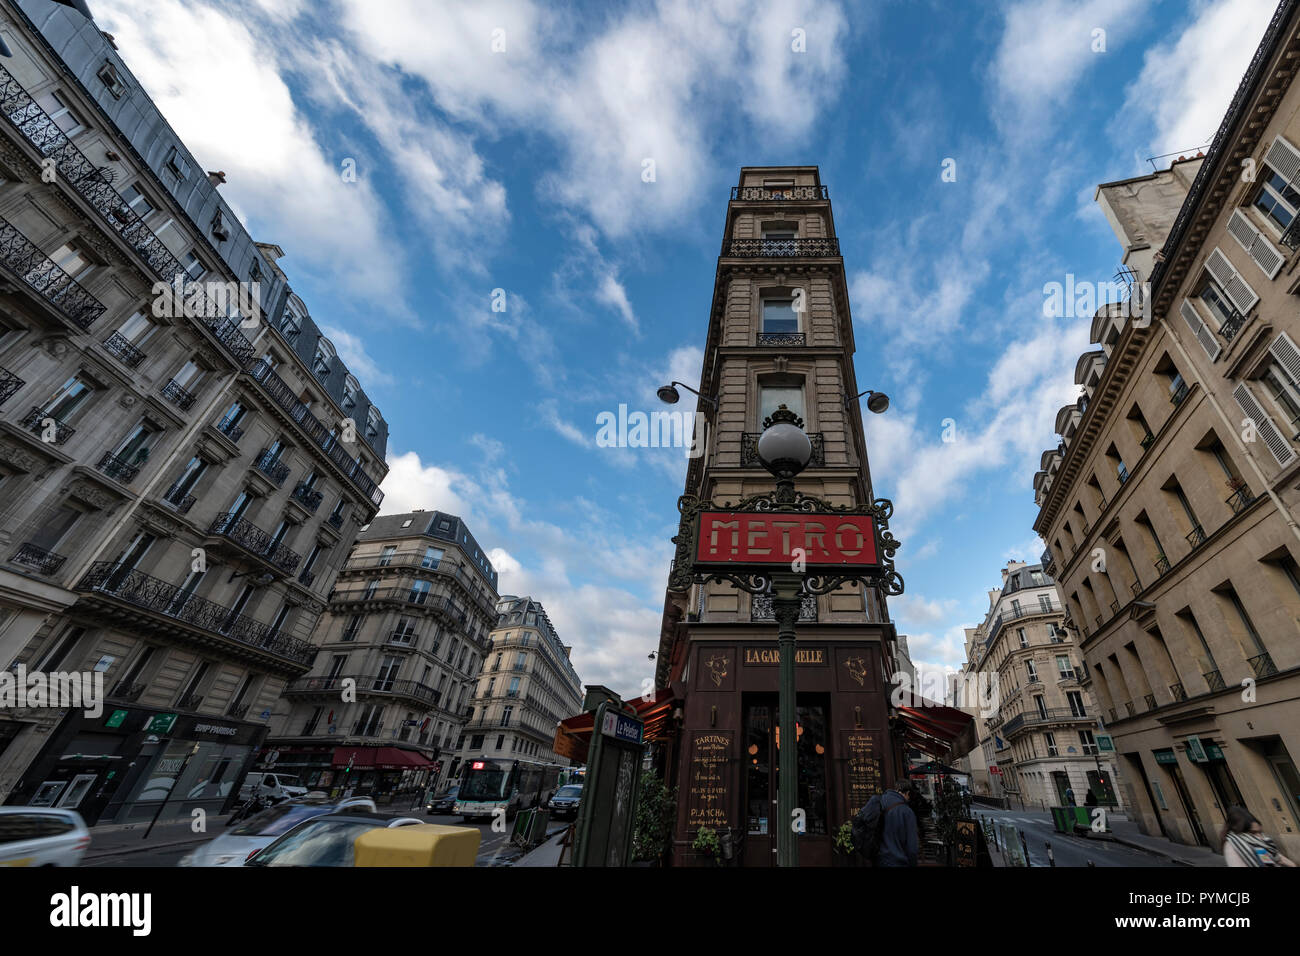 PARIS, 27 October 2018 - View of the typical stone apartment and houses at the Haussmann boulevard with an Metro station entrance and restaurant - Stock Image